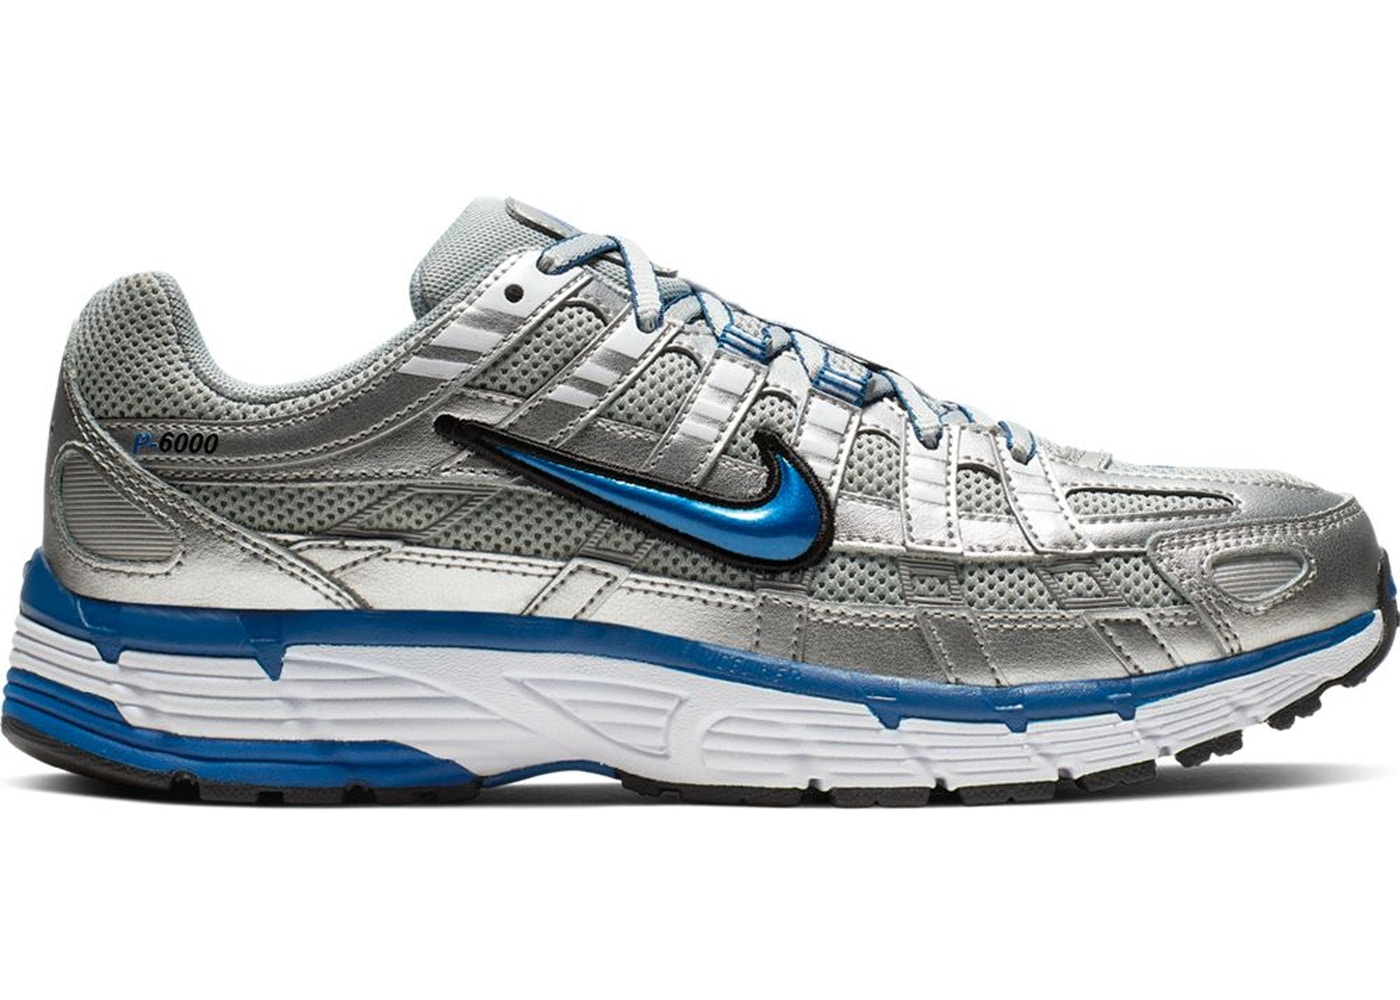 new style 4a58d e2622 Nike P-6000 Laser Blue (W)